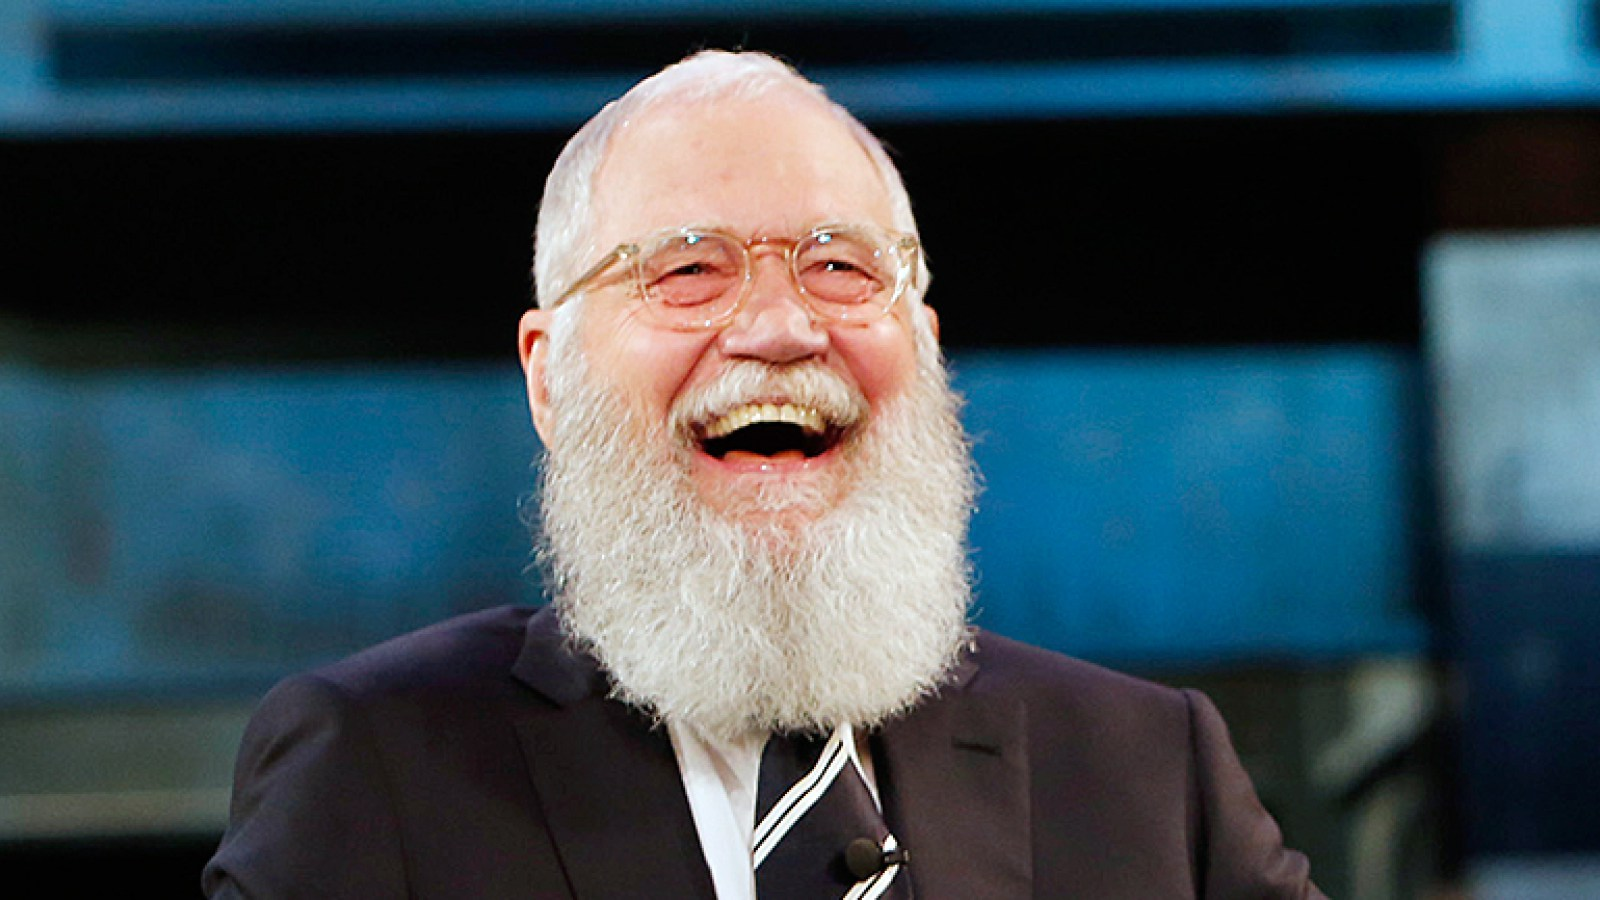 Barack Obama to be David Letterman's first Netflix guest